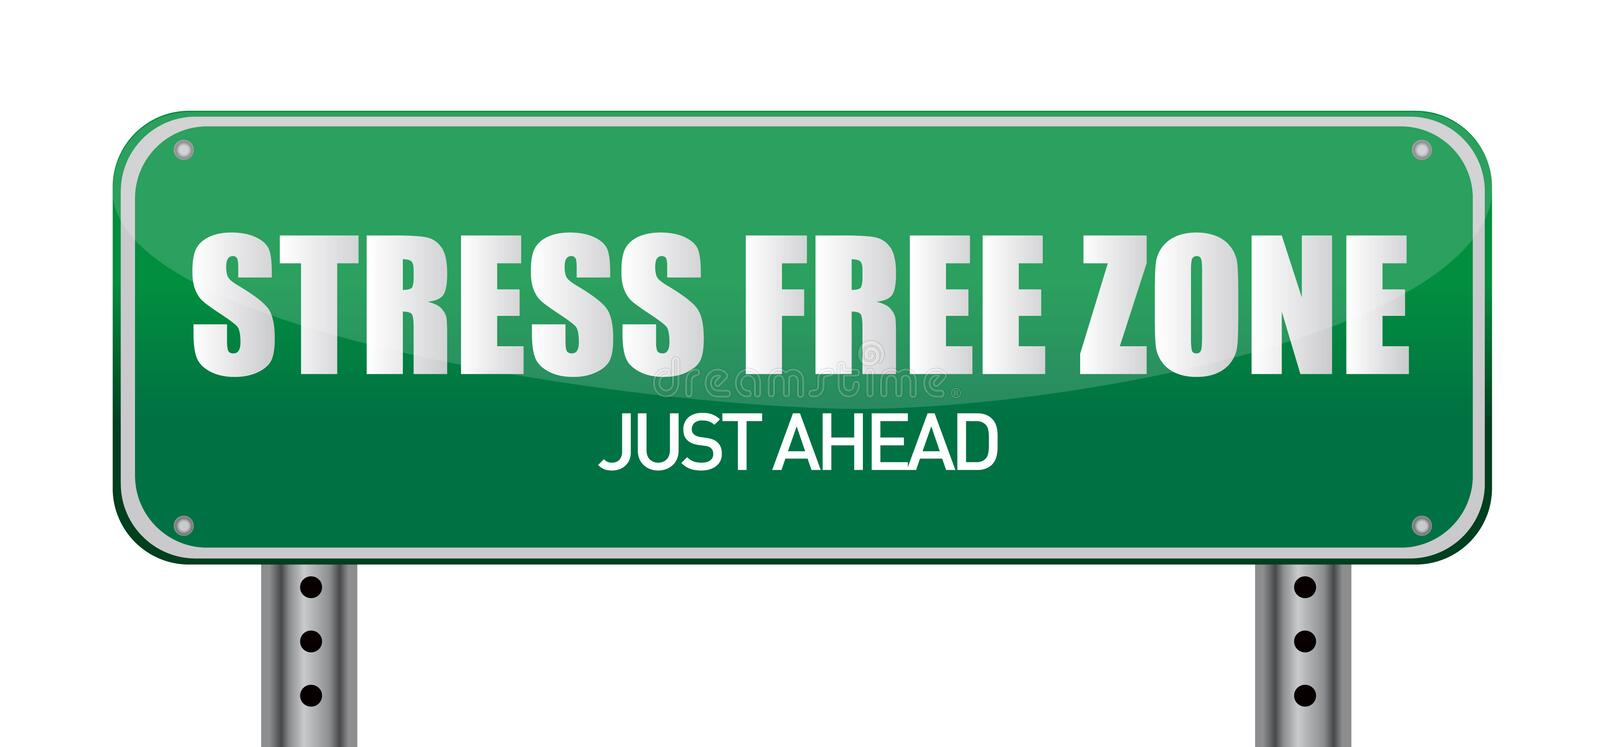 Stress free Zone just ahead illustration sign royalty free illustration